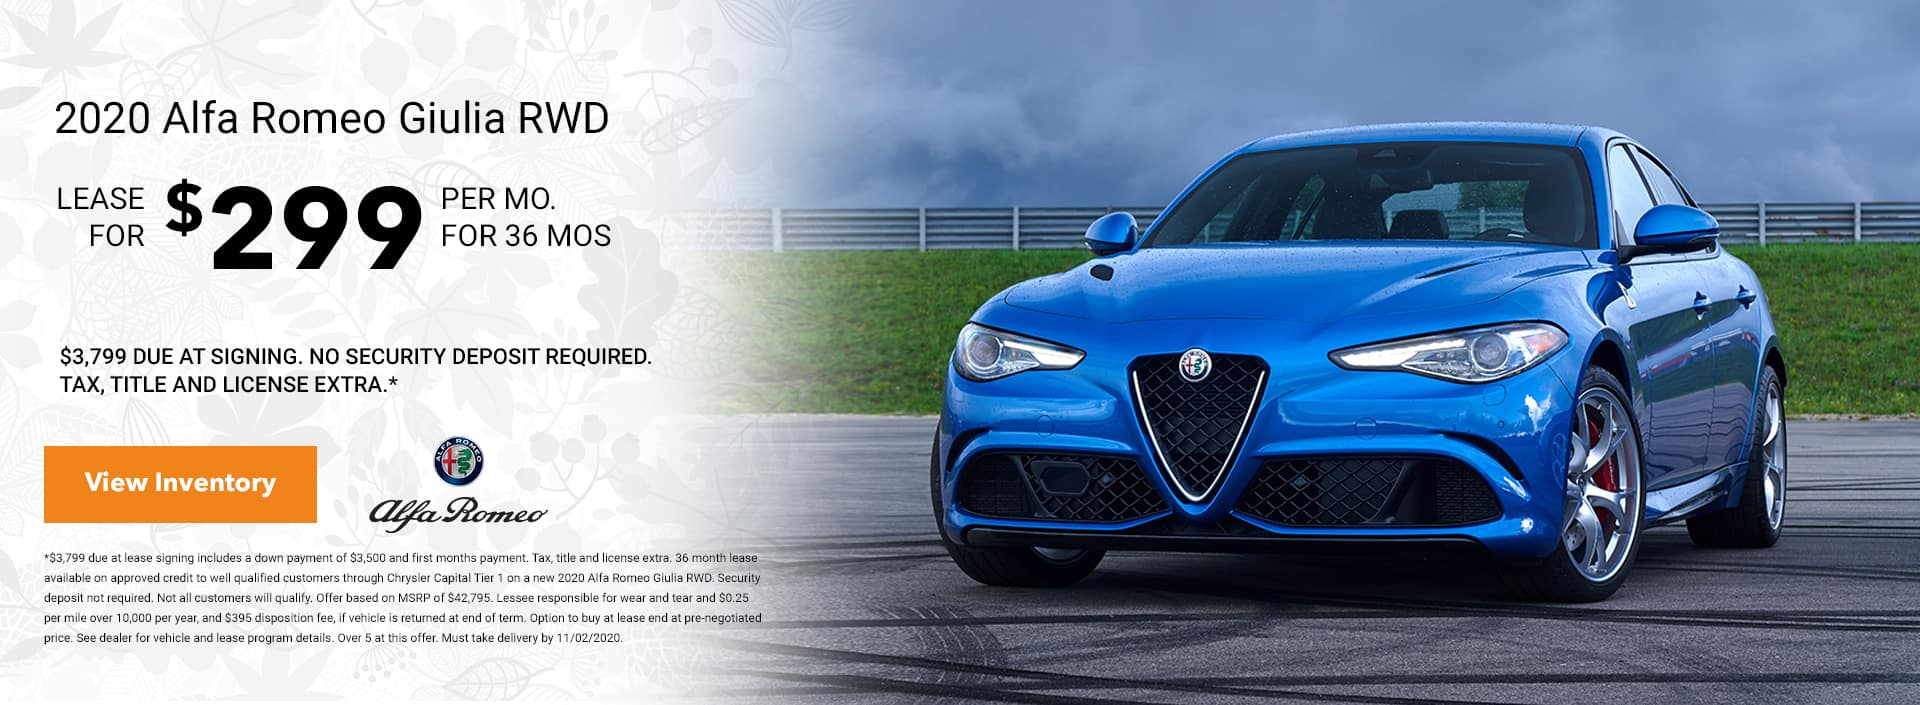 giulia oct offer